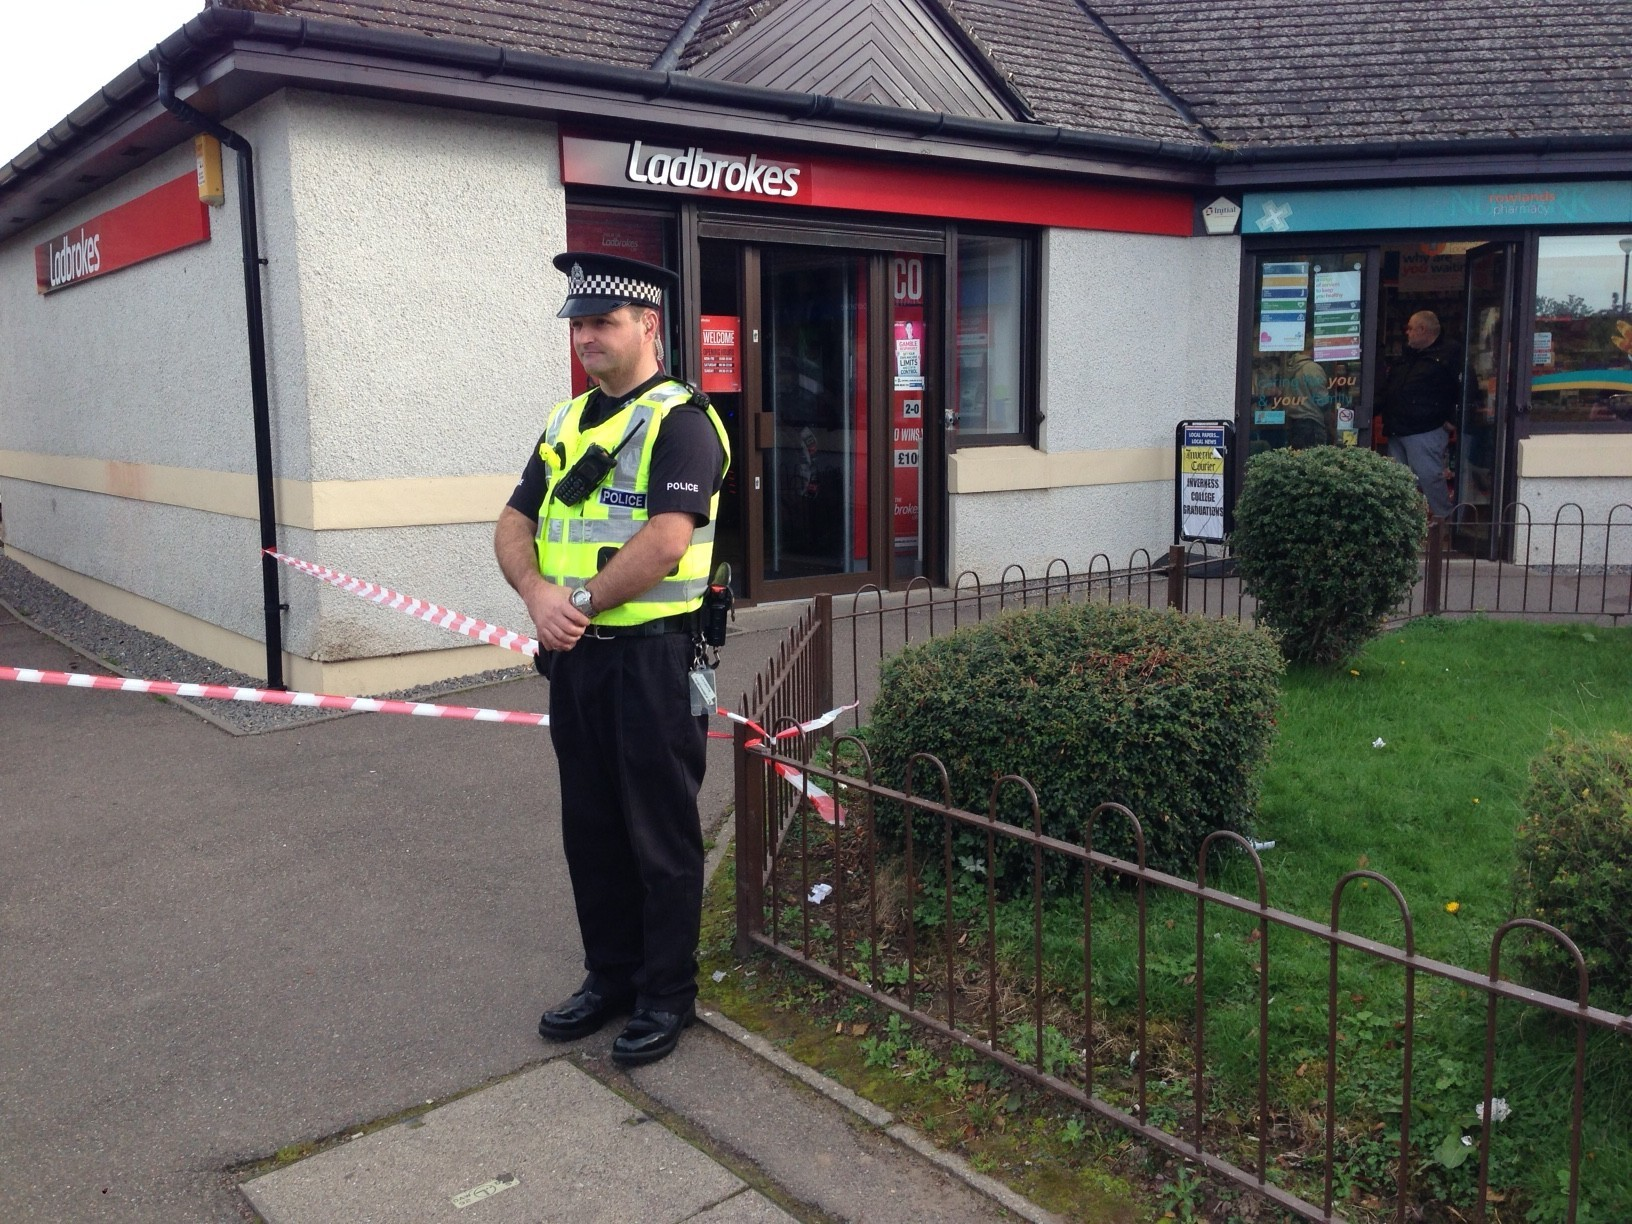 Police at the scene of the incident in Inverness